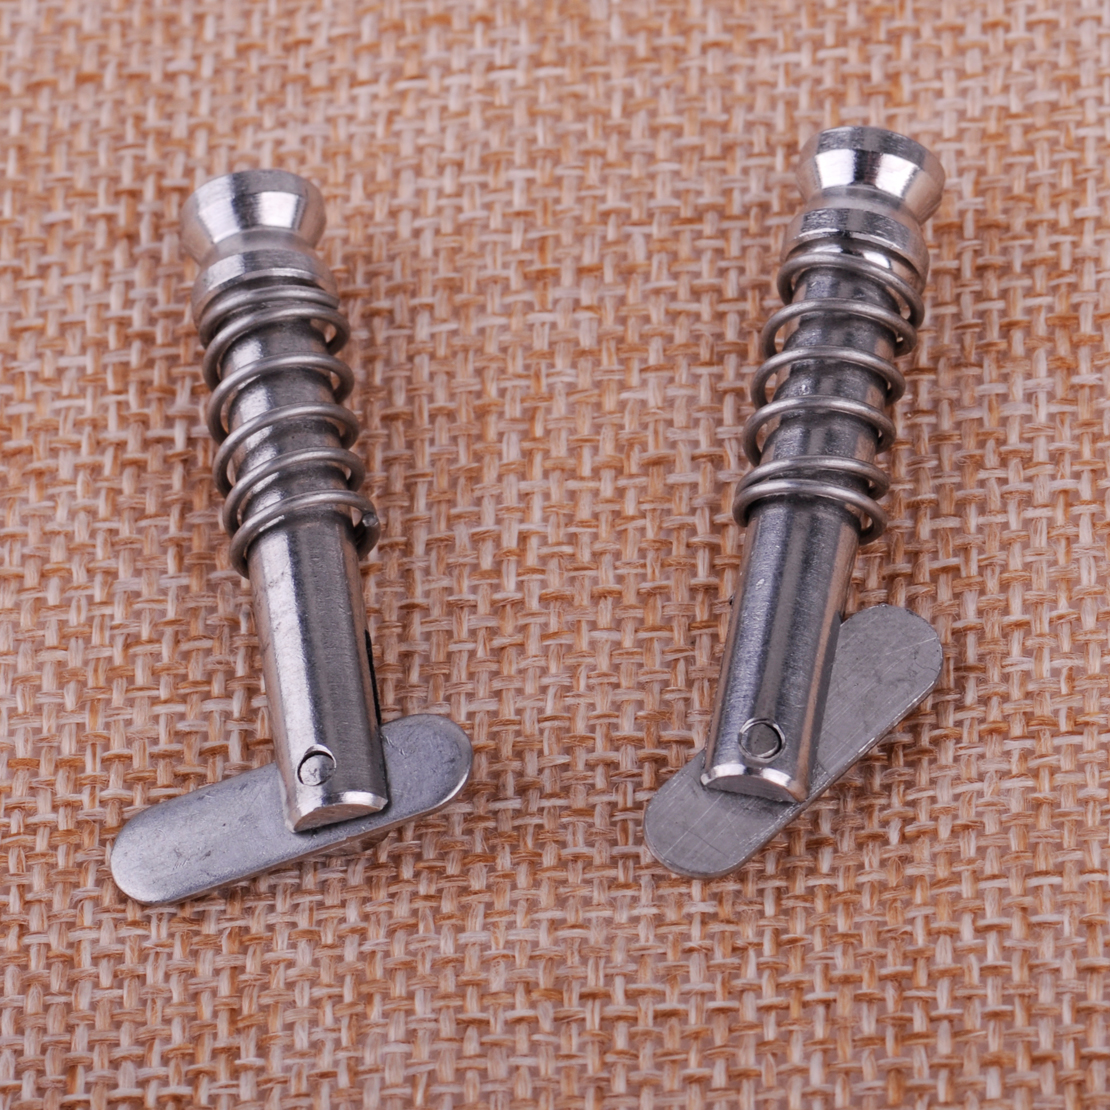 CITALL 2pcs Silver Metal Quick Release Pin Deck Hinge Boat Marine Yatchs Ships Hardware Fitting Parts